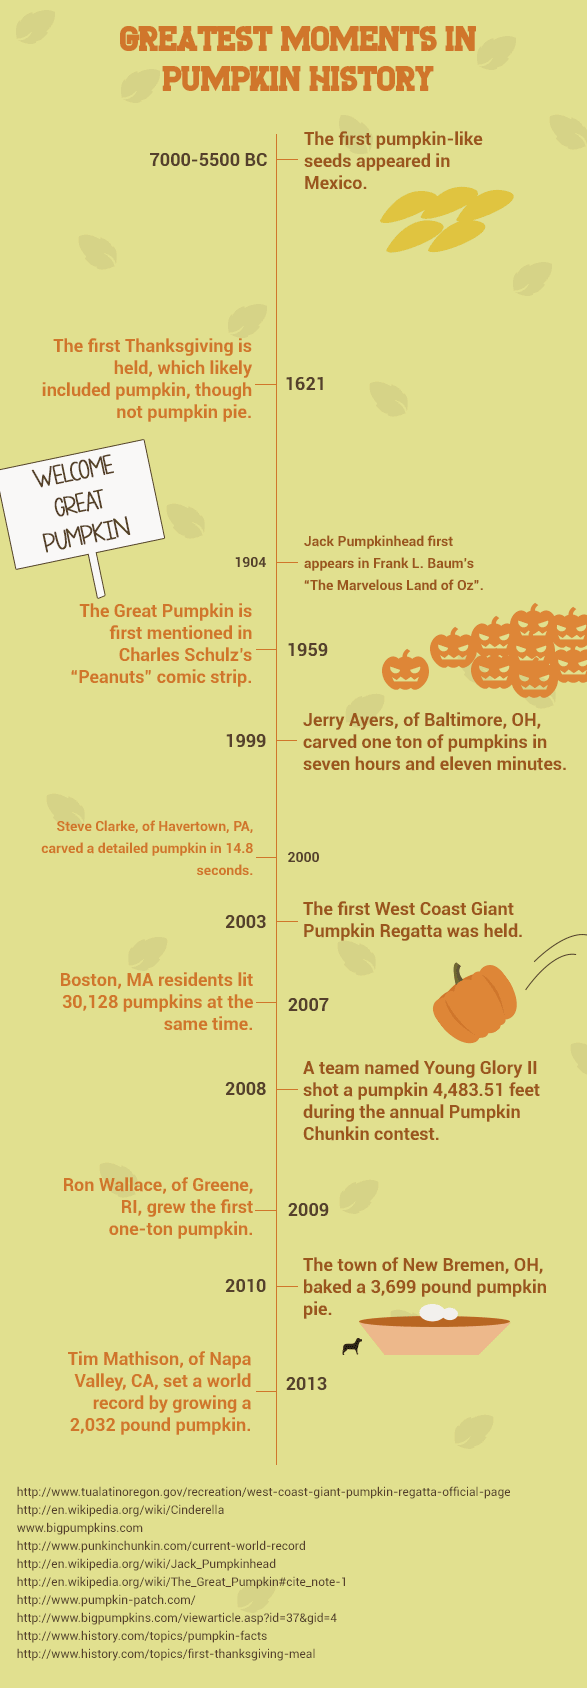 Greatest Moments in Pumpkin History